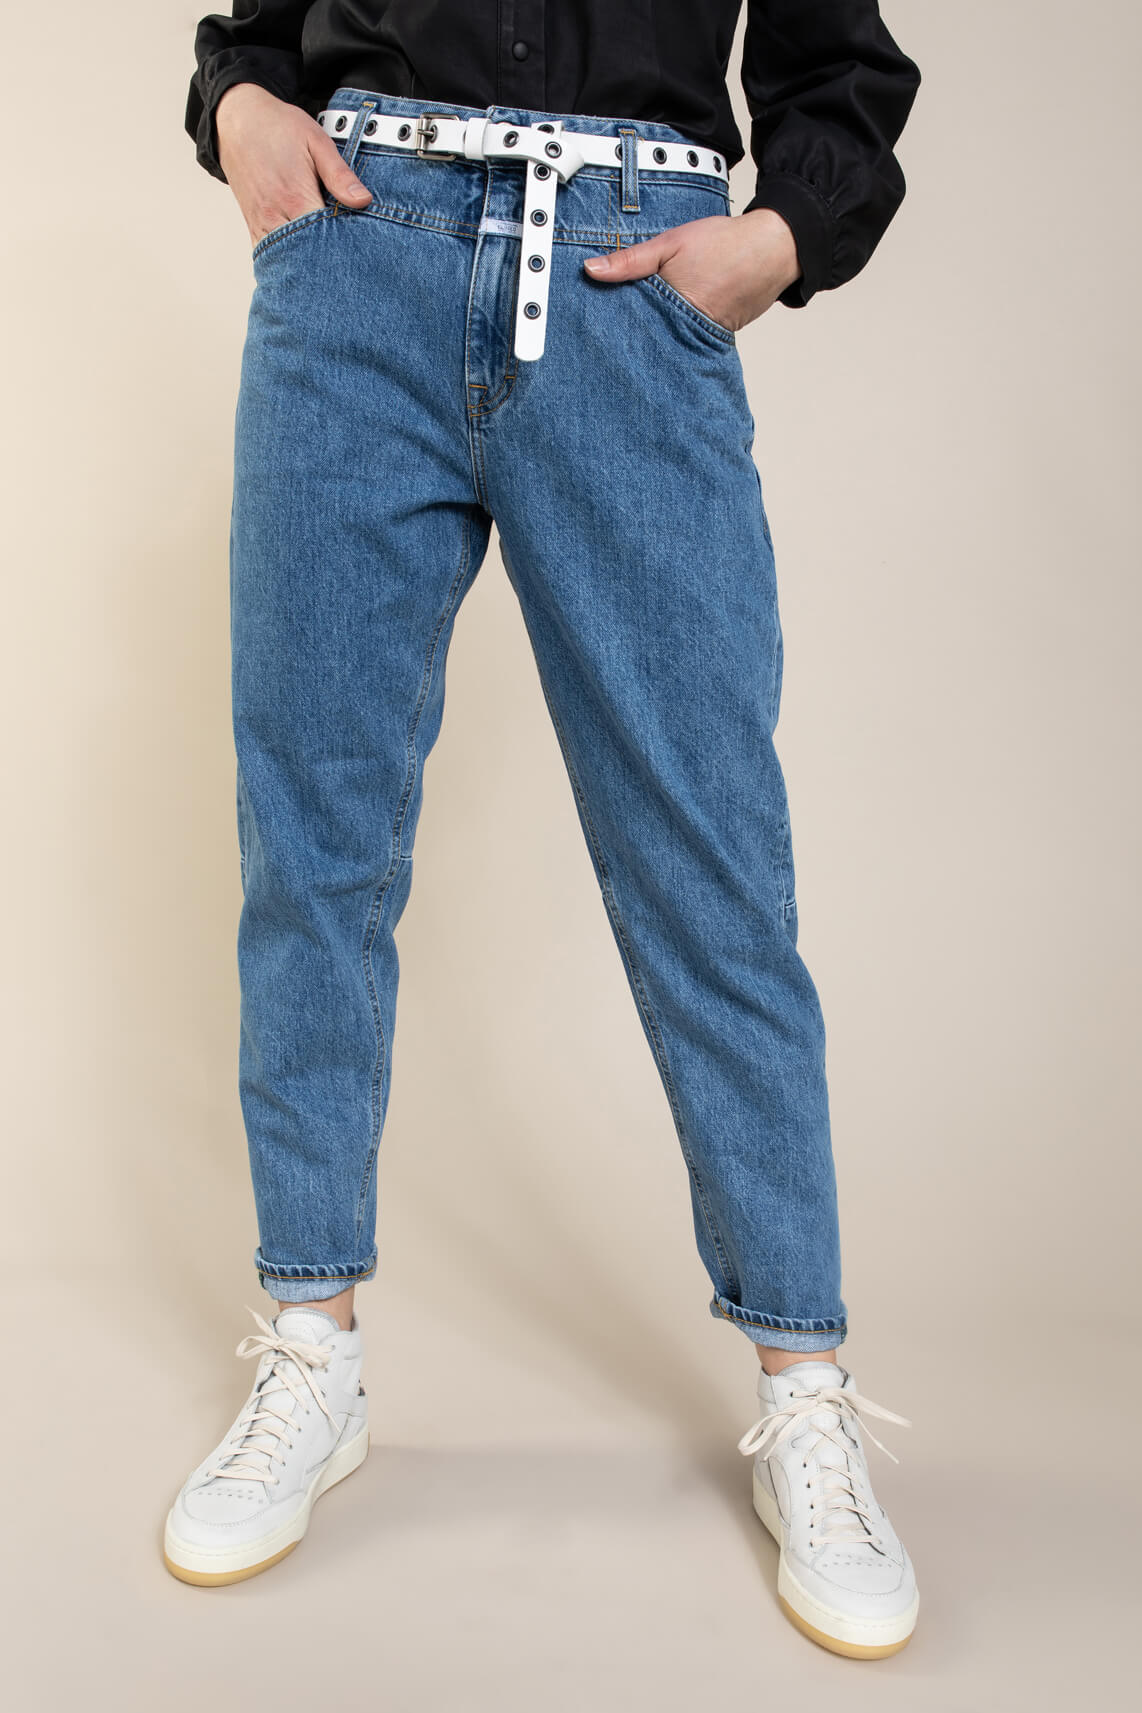 Closed Dames Jeans Blauw